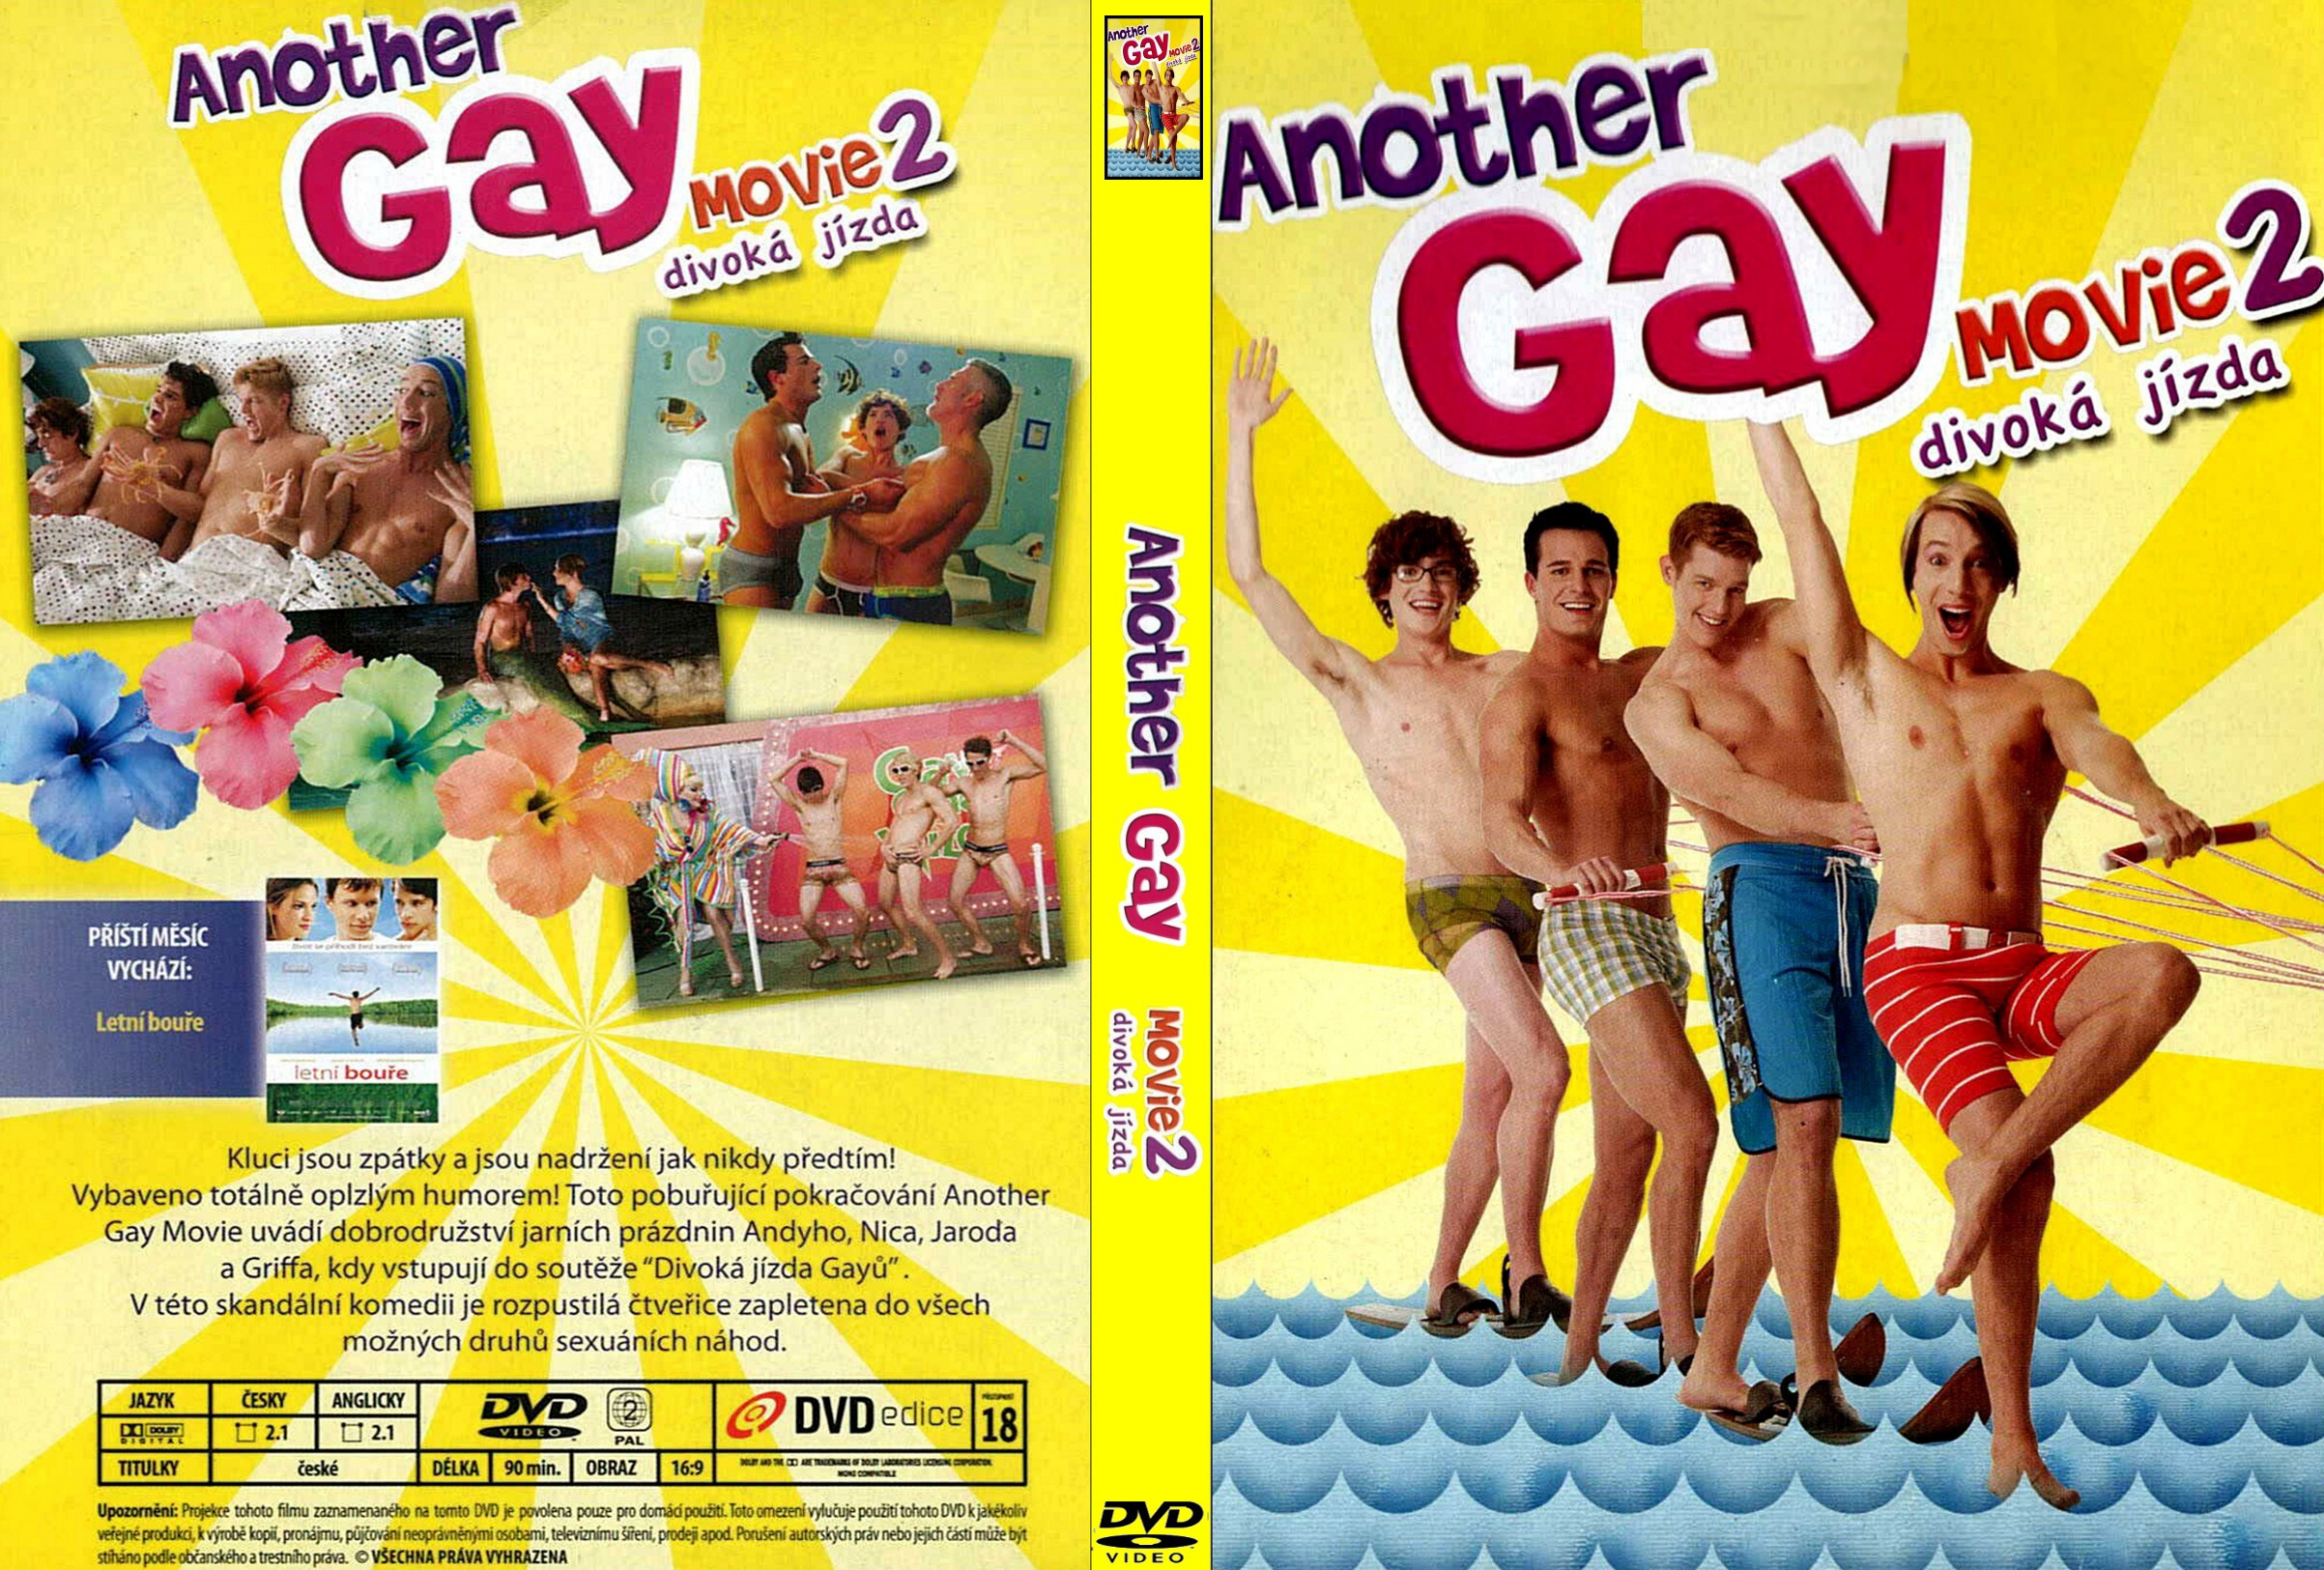 from Emiliano watch another gay movie 2